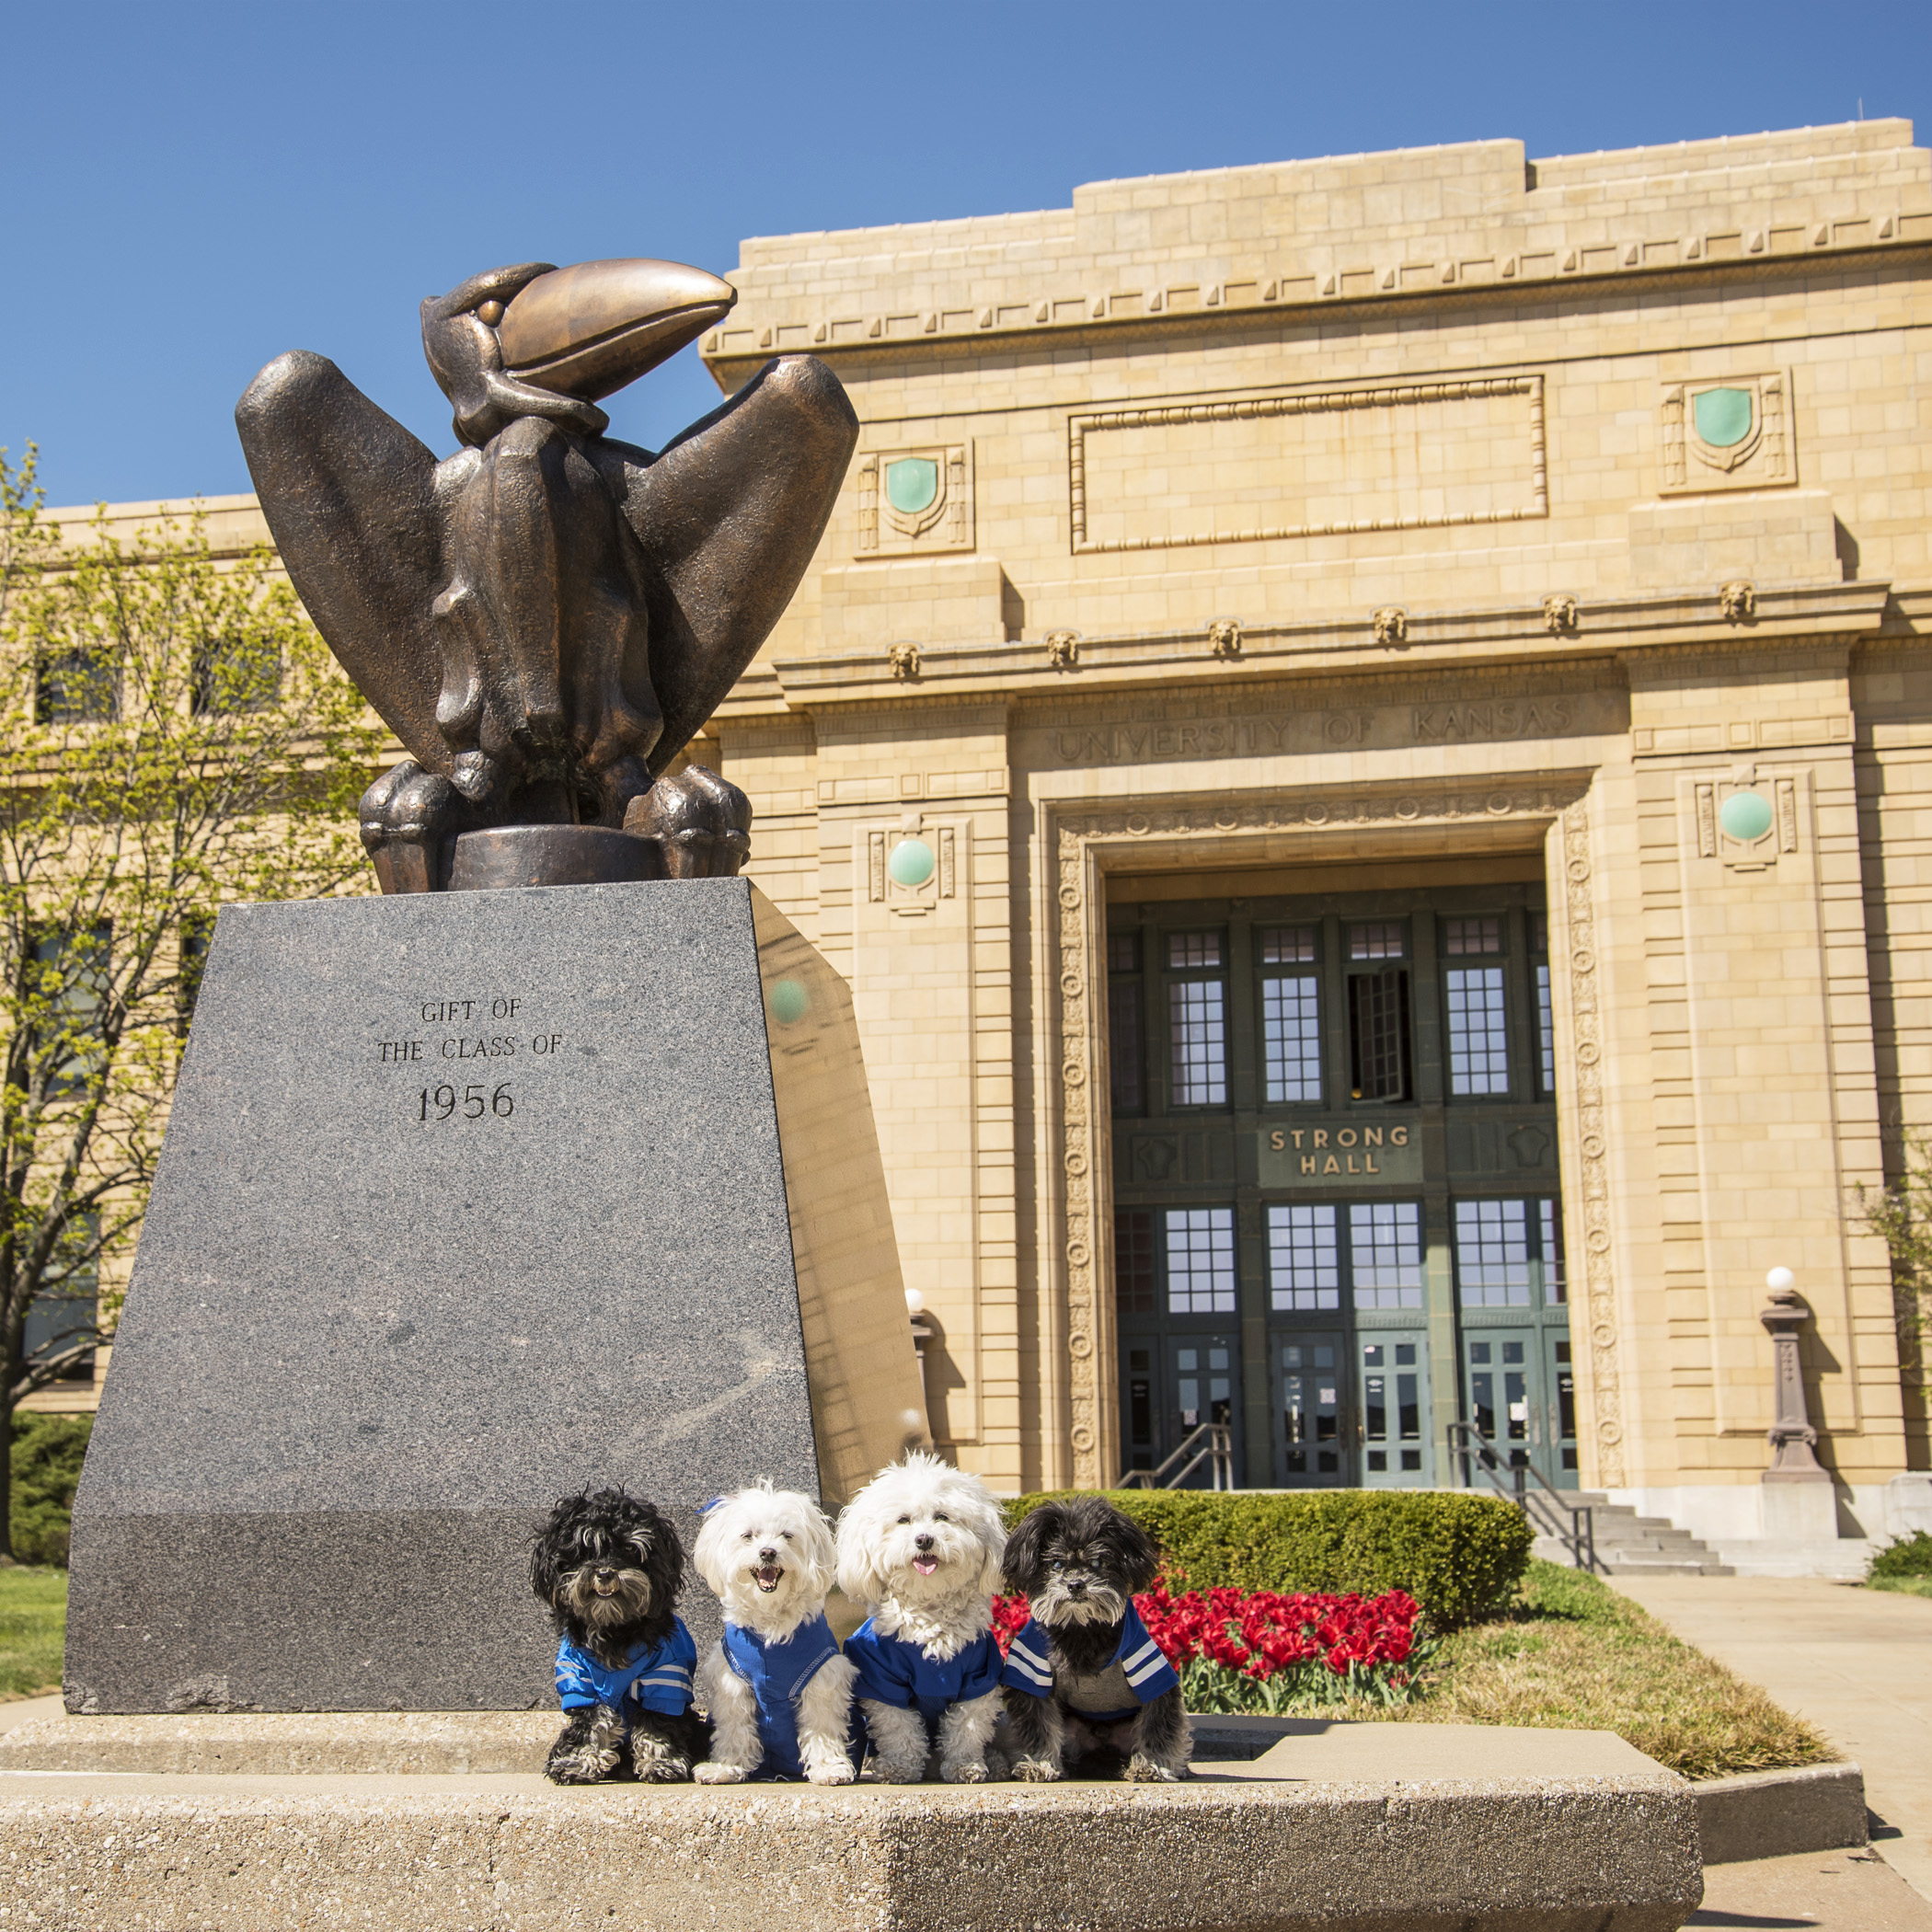 It seemed appropriate for us to pose next to Strong Hall! We're the strongest little fluffies we know…and we're a lot cuter than that old version of the Jayhawk!